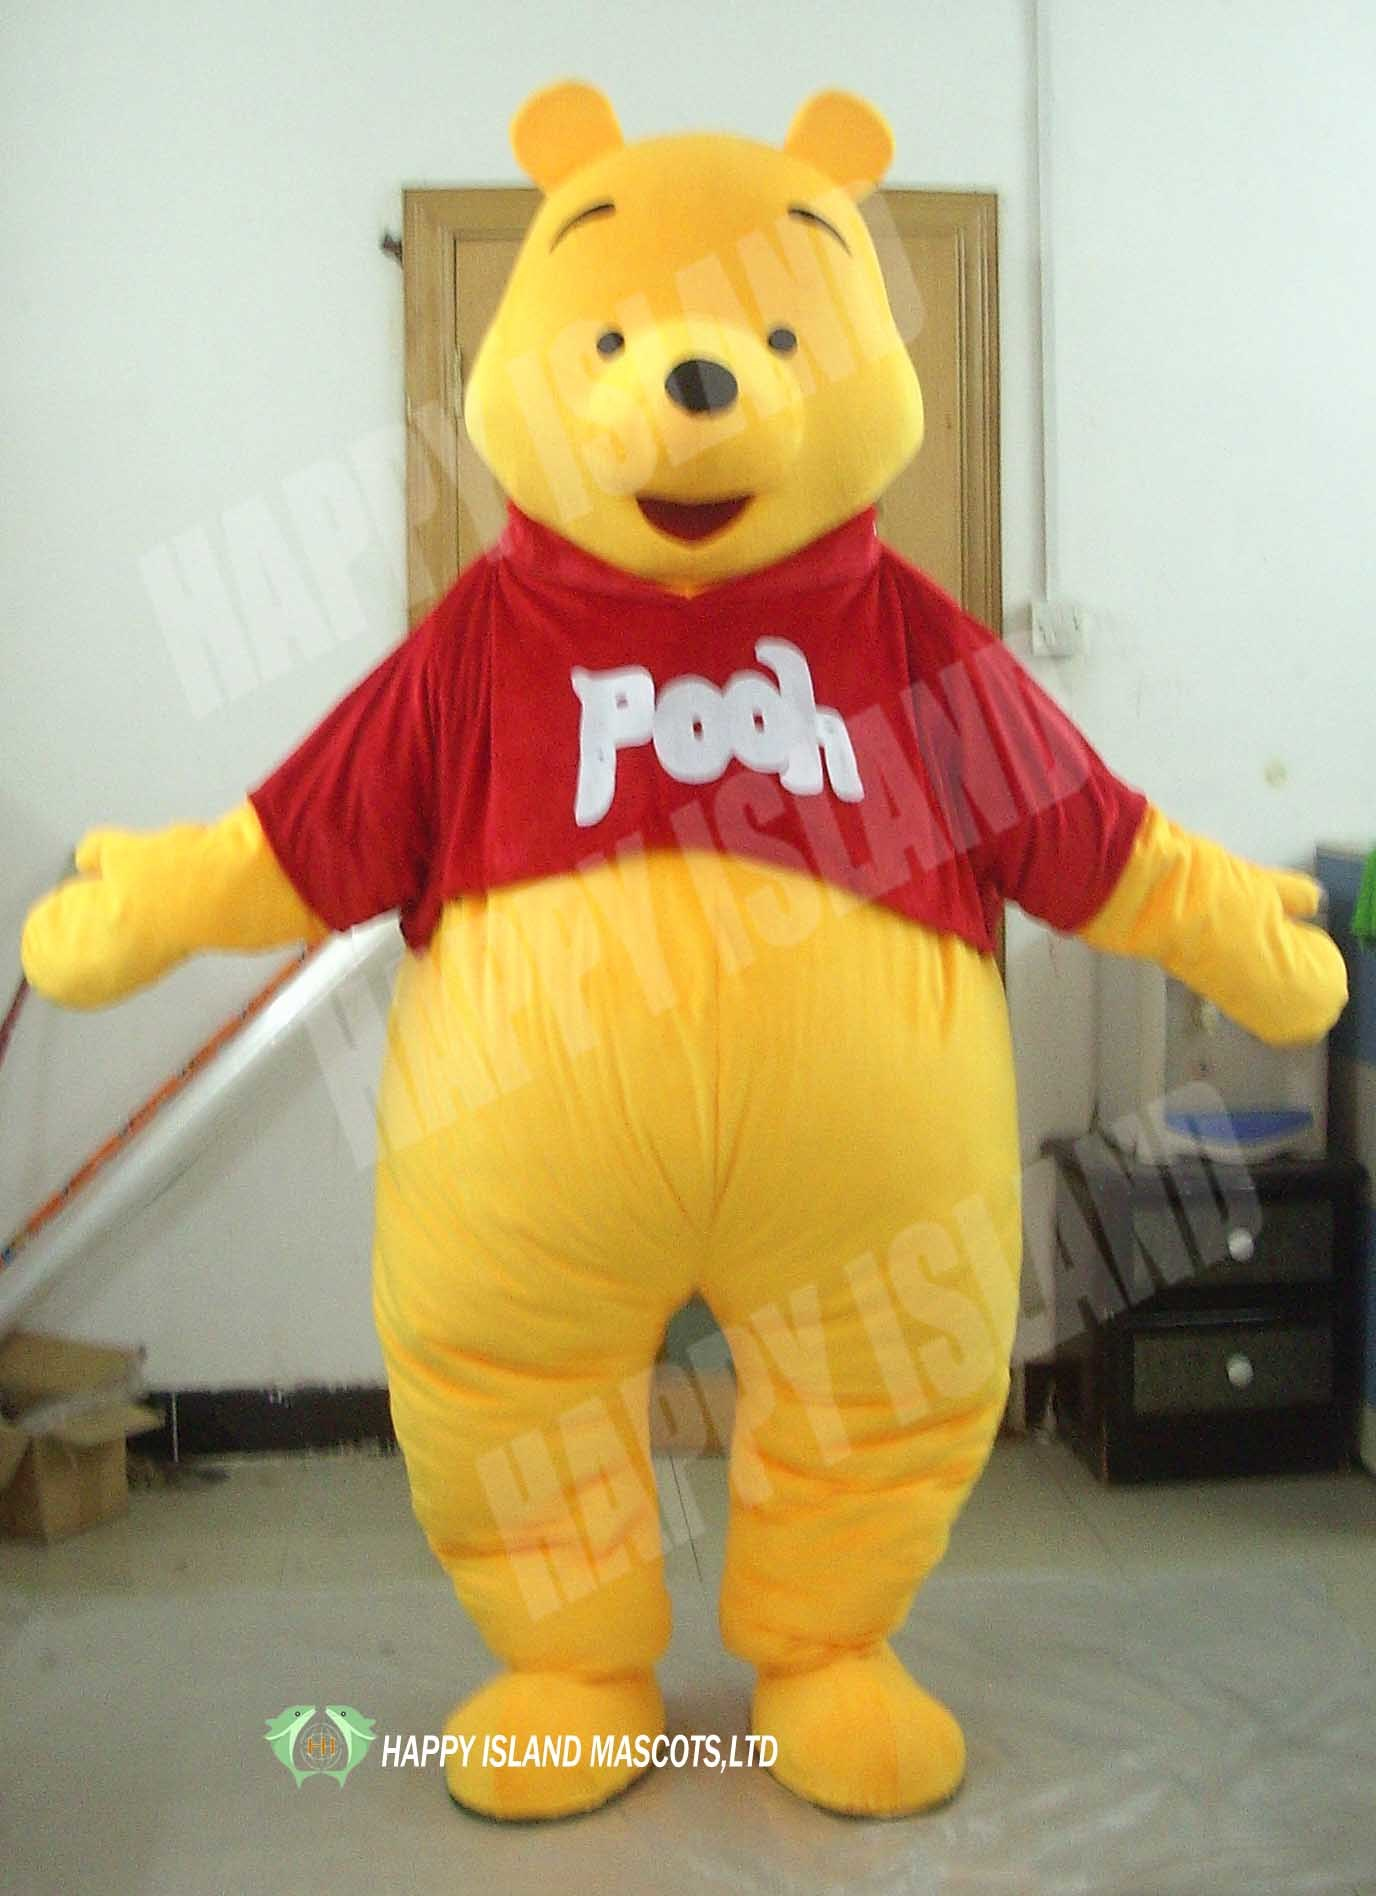 9881fac9d406 China 2012 Winnie The Pooh Costume for Adults (HI0102009) - China Winnie  The Pooh Costume for Adults